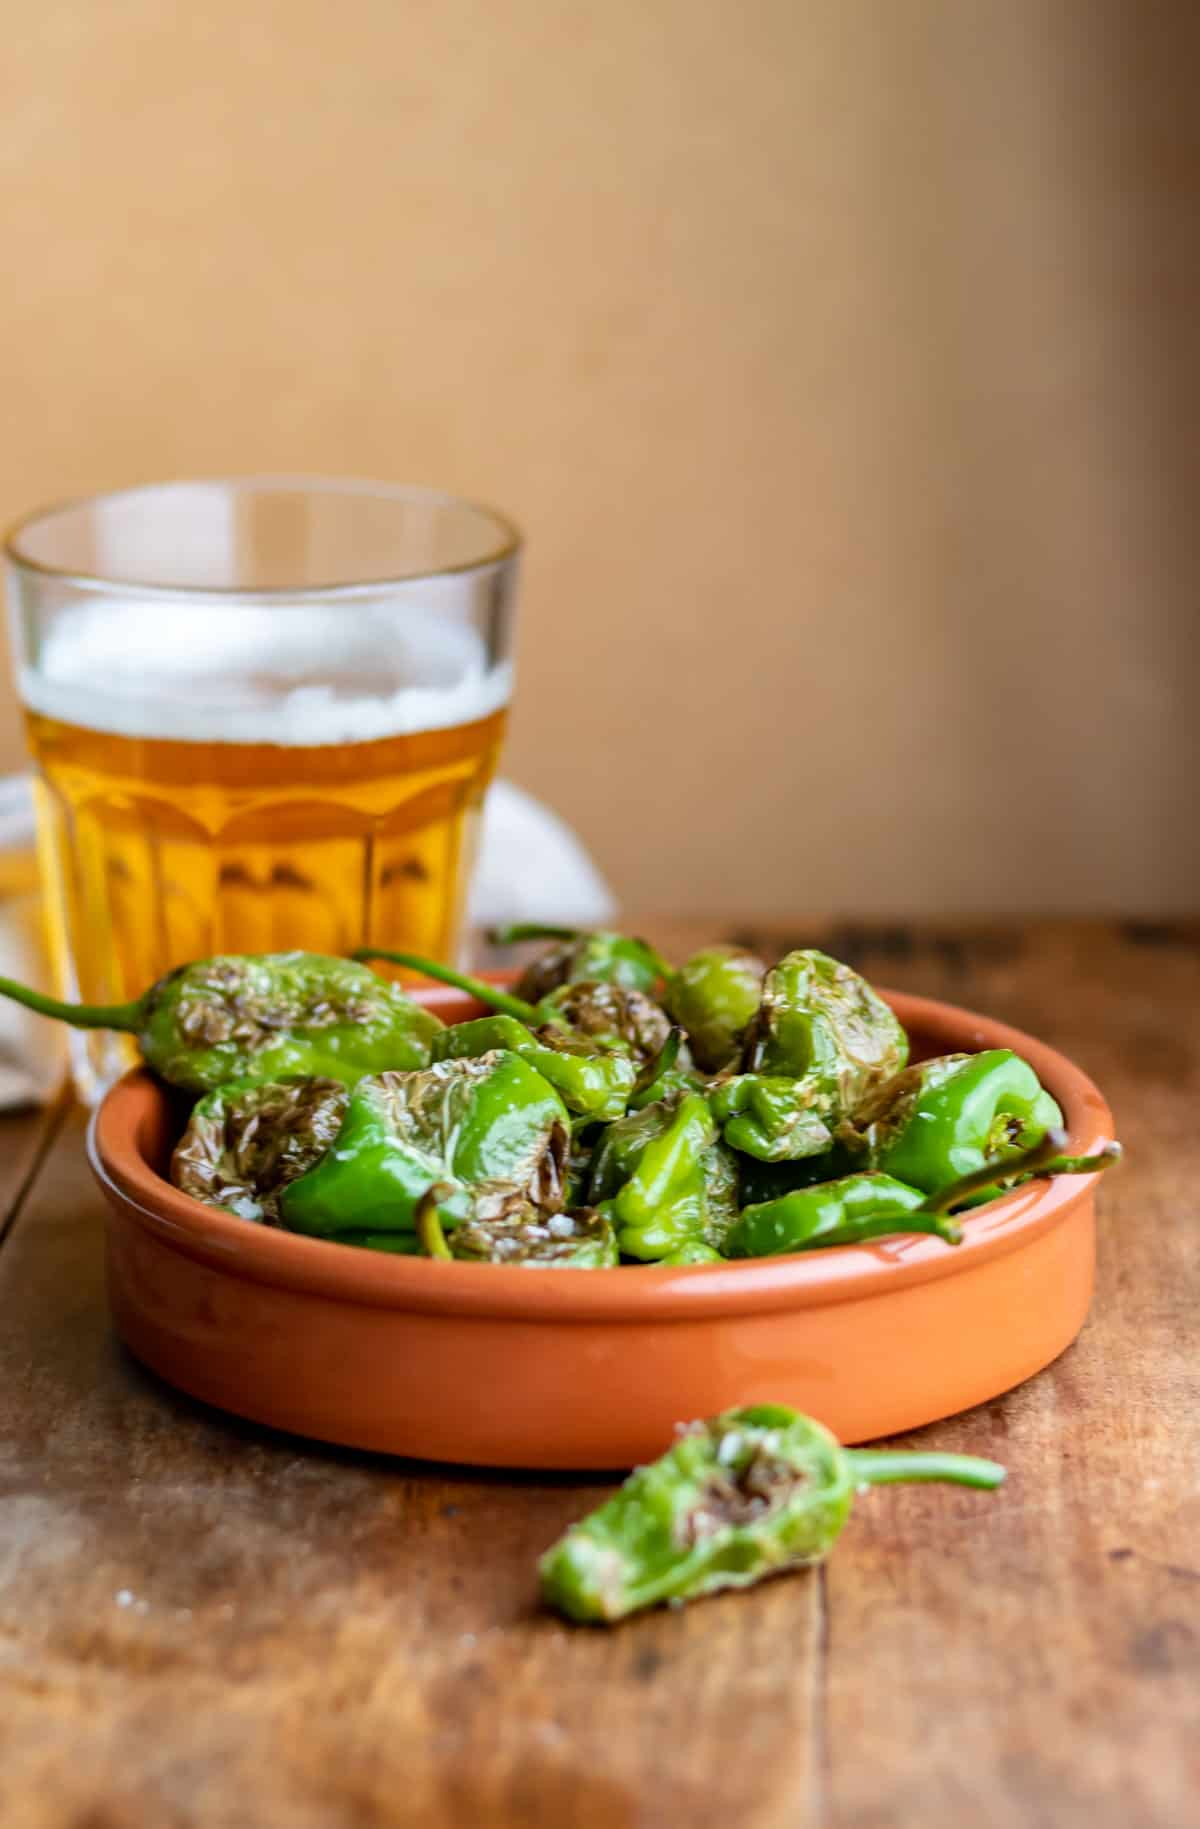 Table with a beer and dish of cooked peppers.